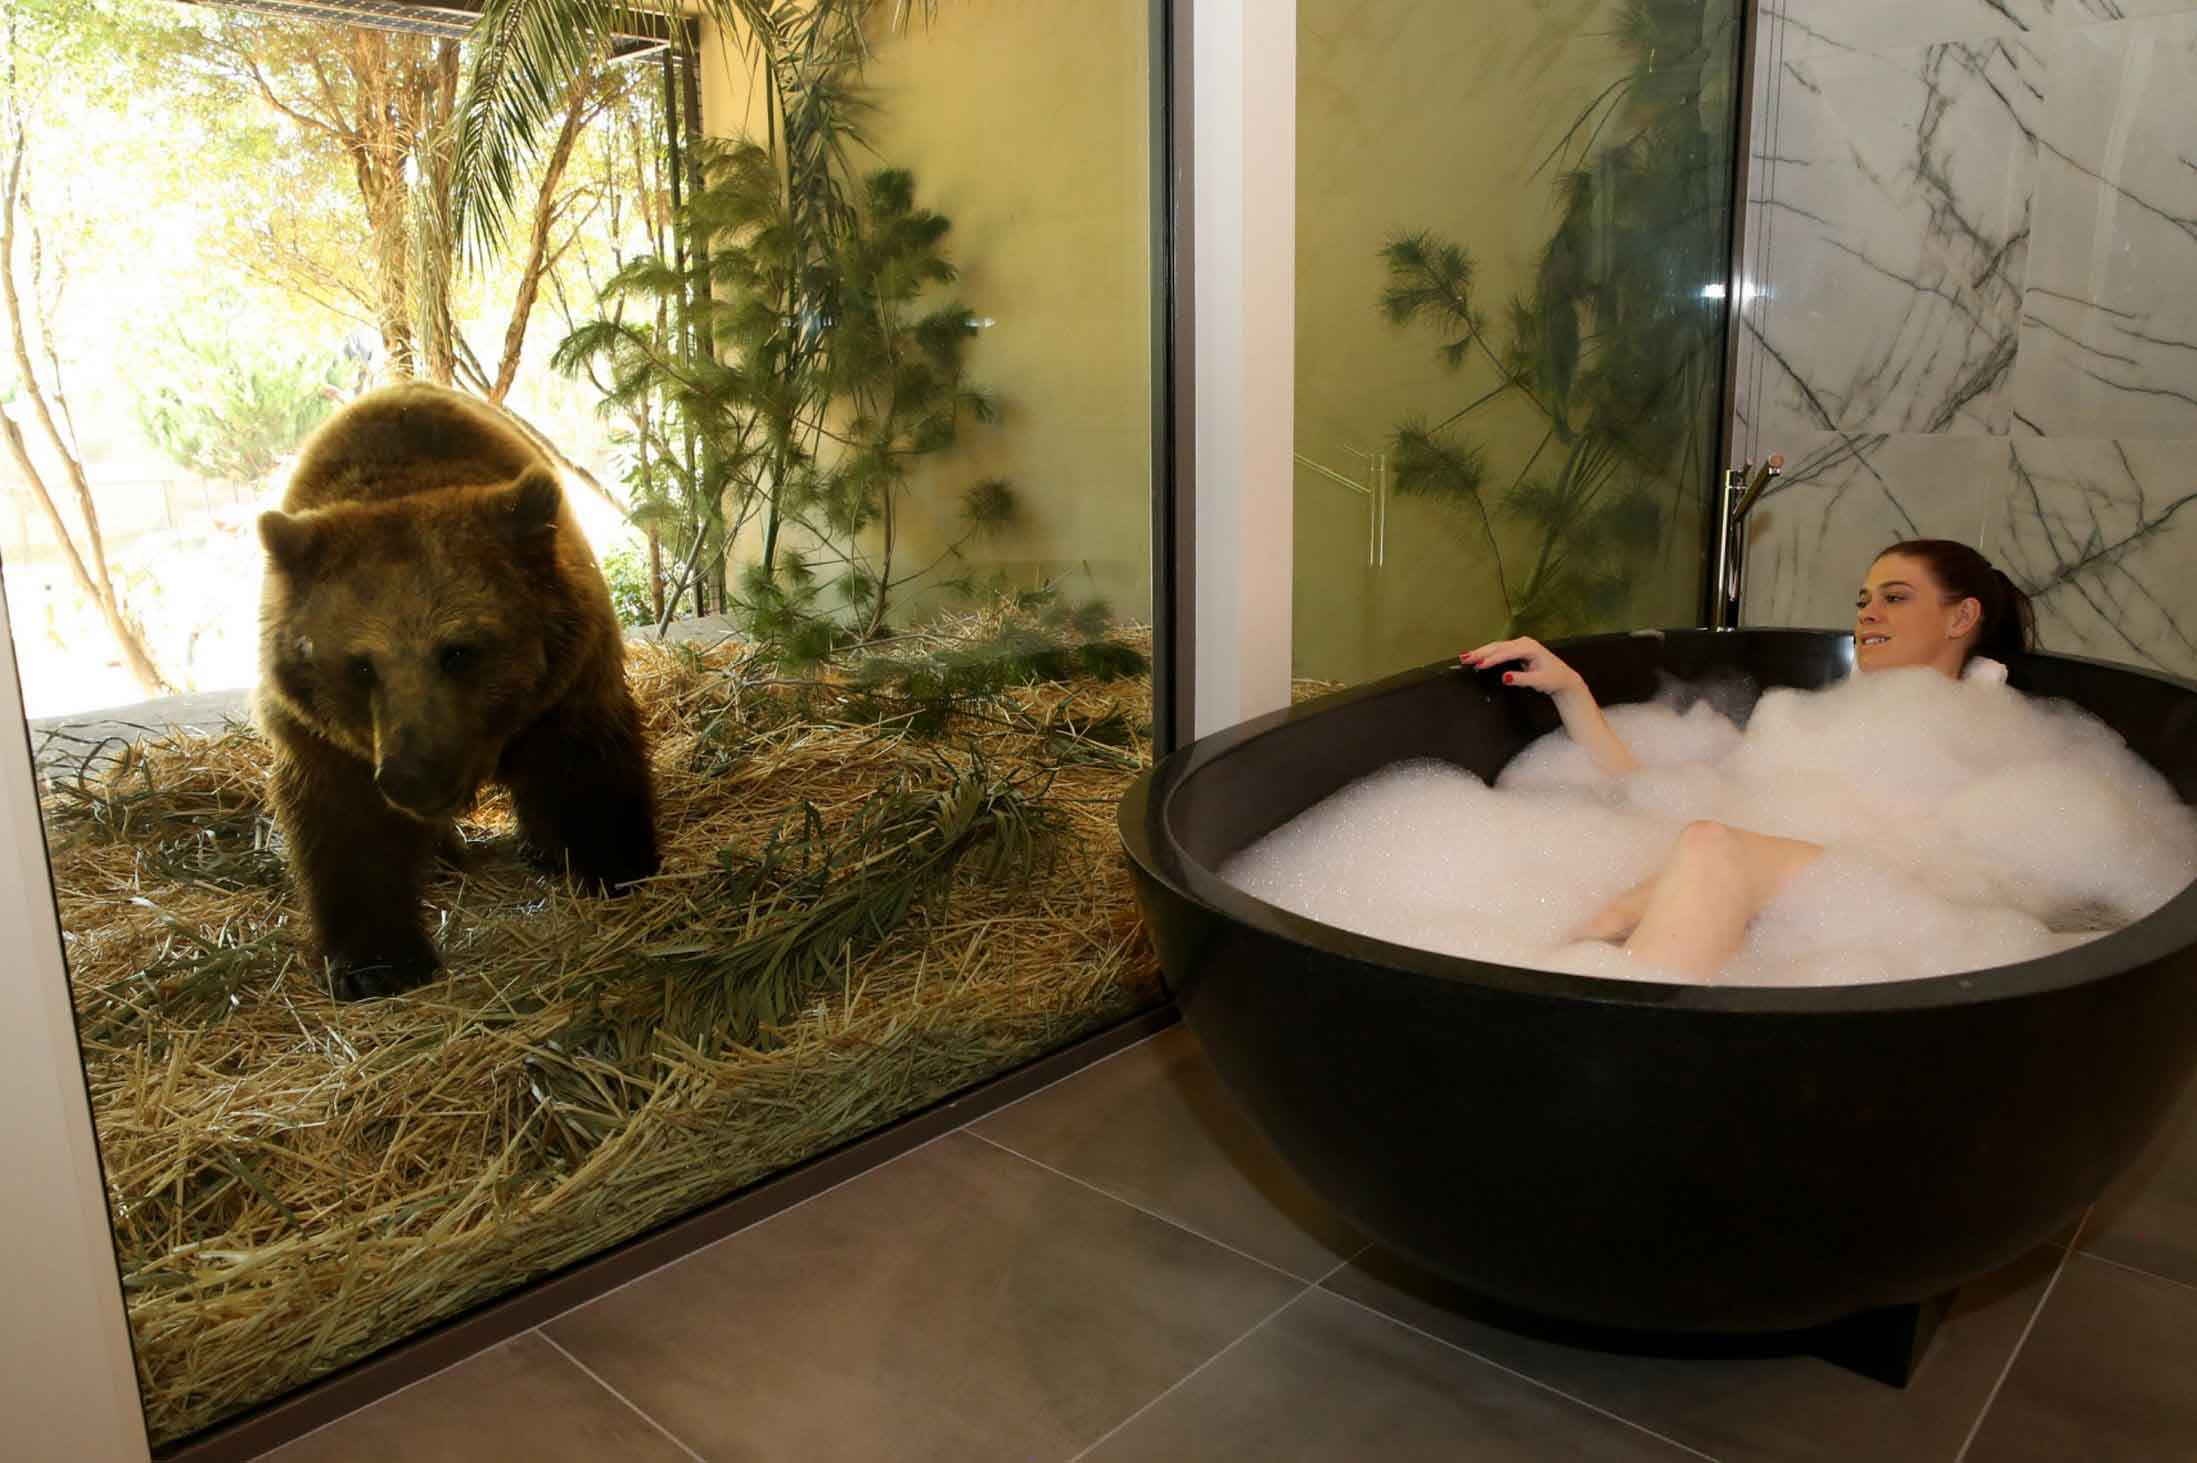 The Jamala Wildlife Lodge hotel room with a bear